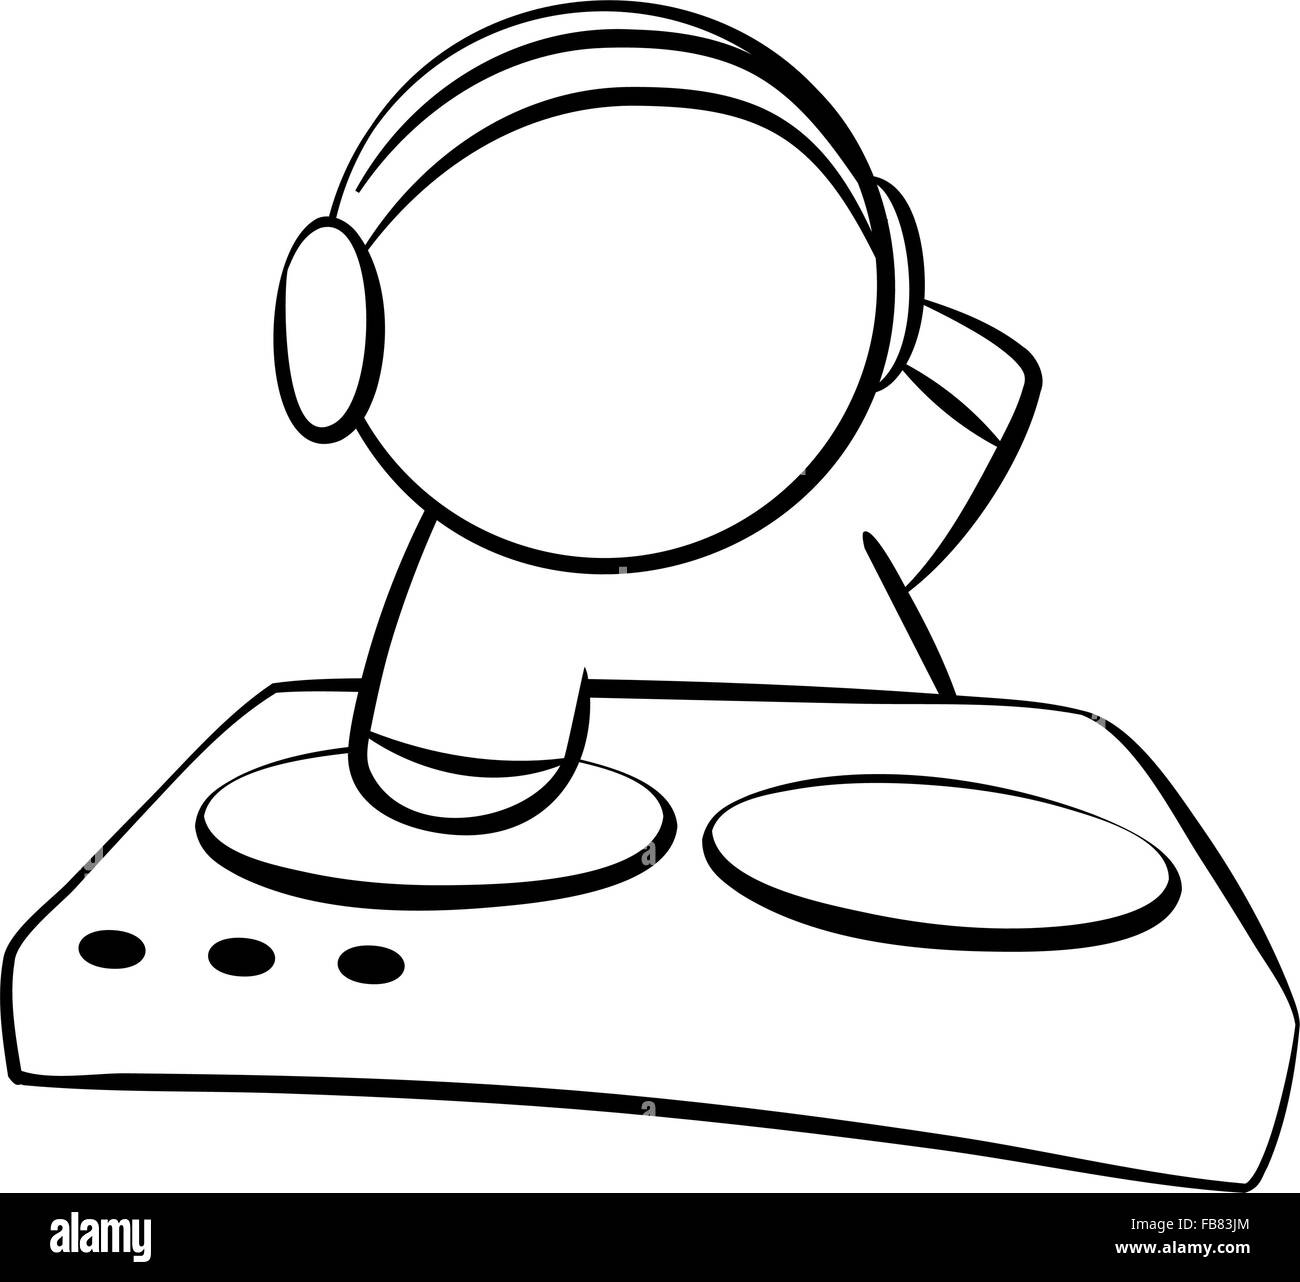 Line Drawing Of Dj Stock Vector Art Illustration Vector Image